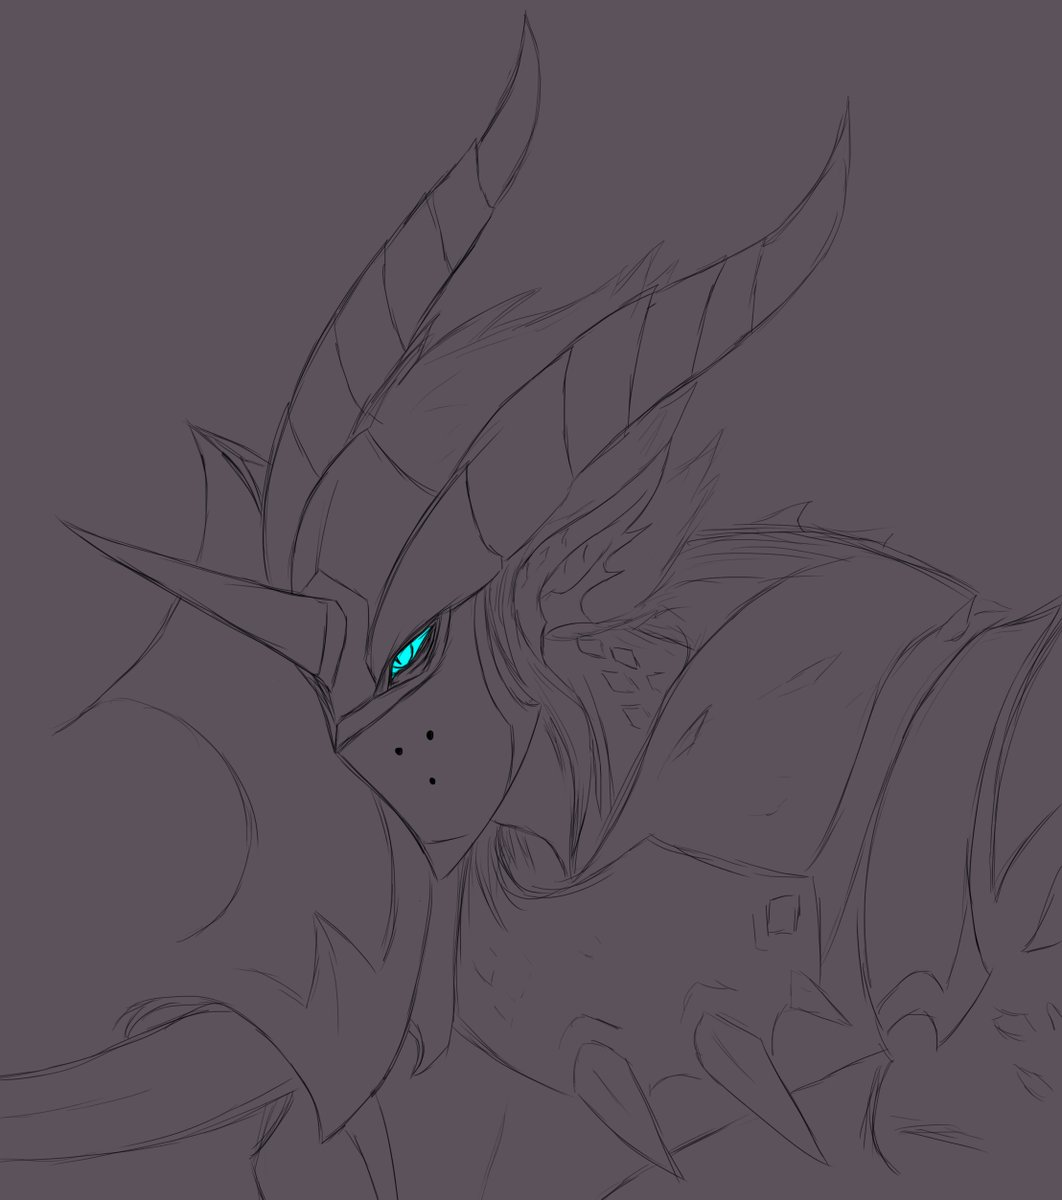 Quick Dragon Knight #Mordekaiser doodle since Spideraxe shared some sick splash art explorations. <br>http://pic.twitter.com/4f13UDu8fh